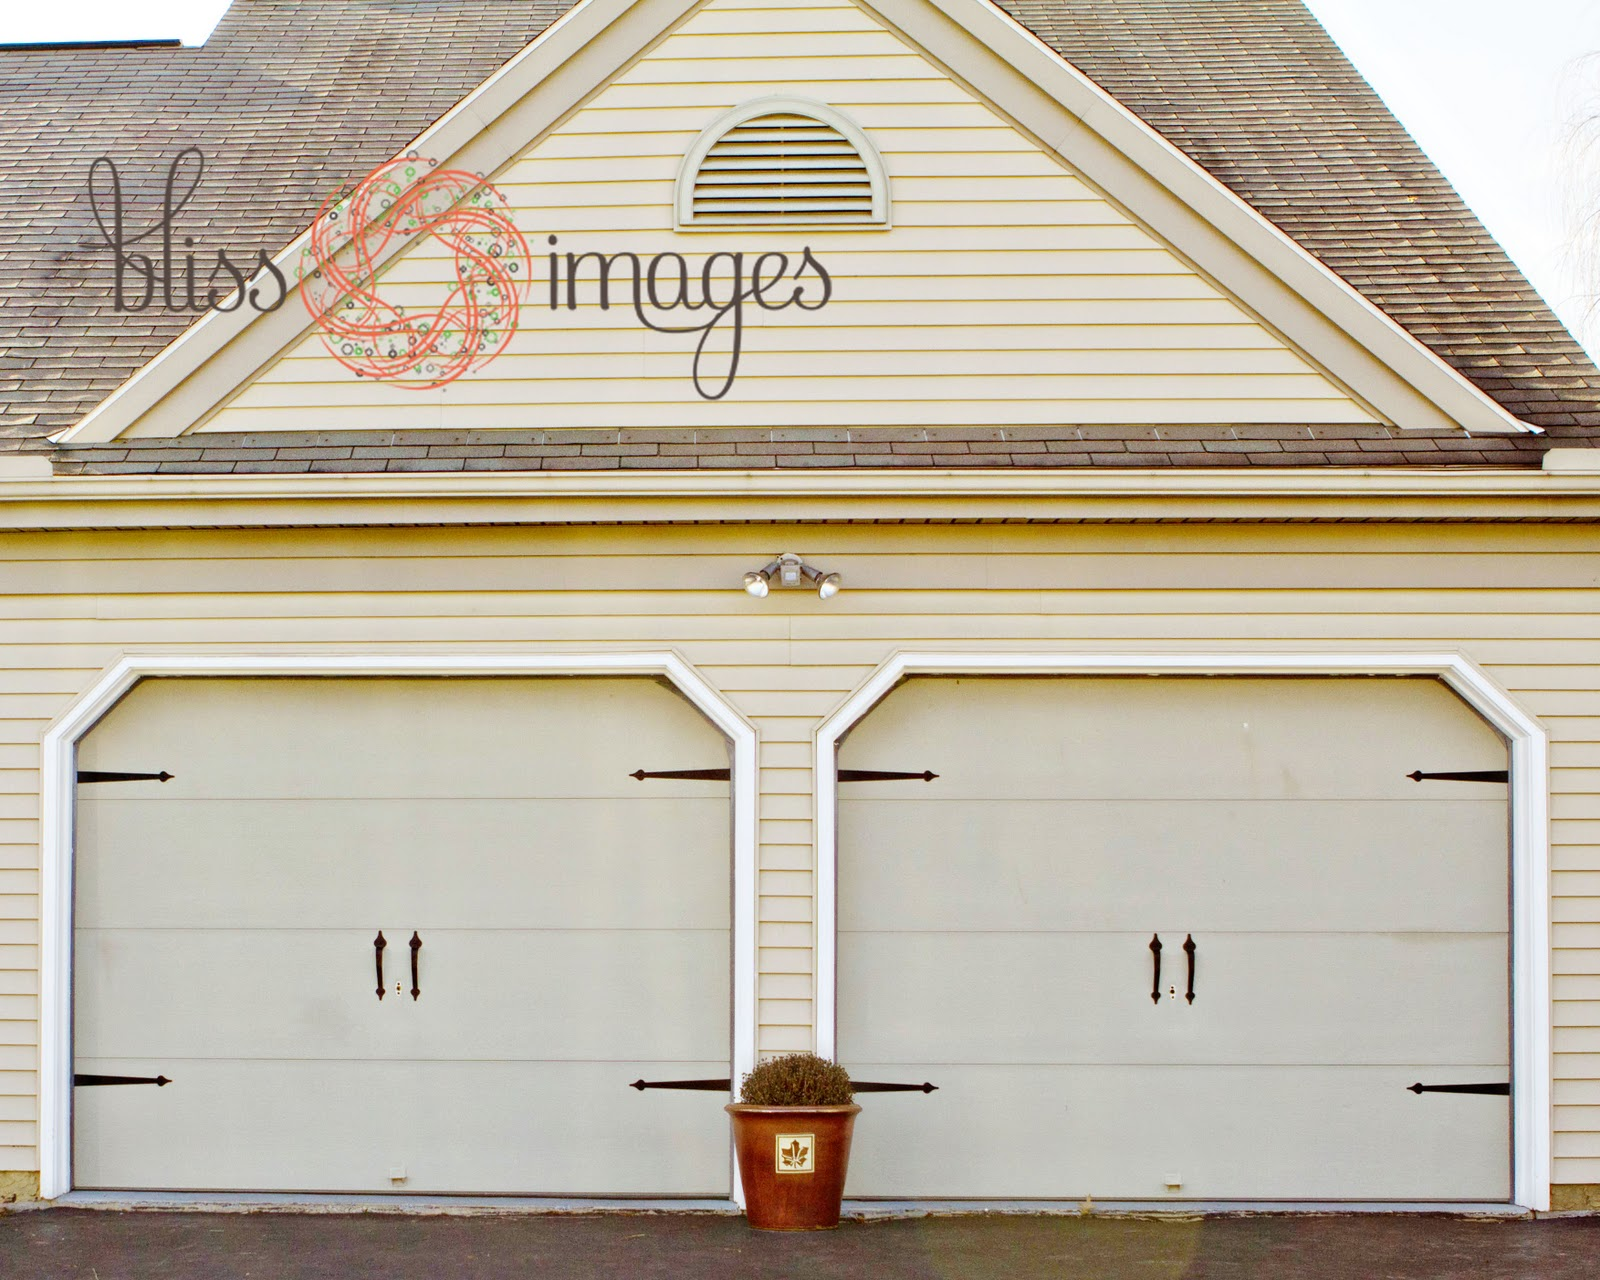 Did you know you can easily update your garage doors with a bit of hardware? Check it out on the Bliss Images site.